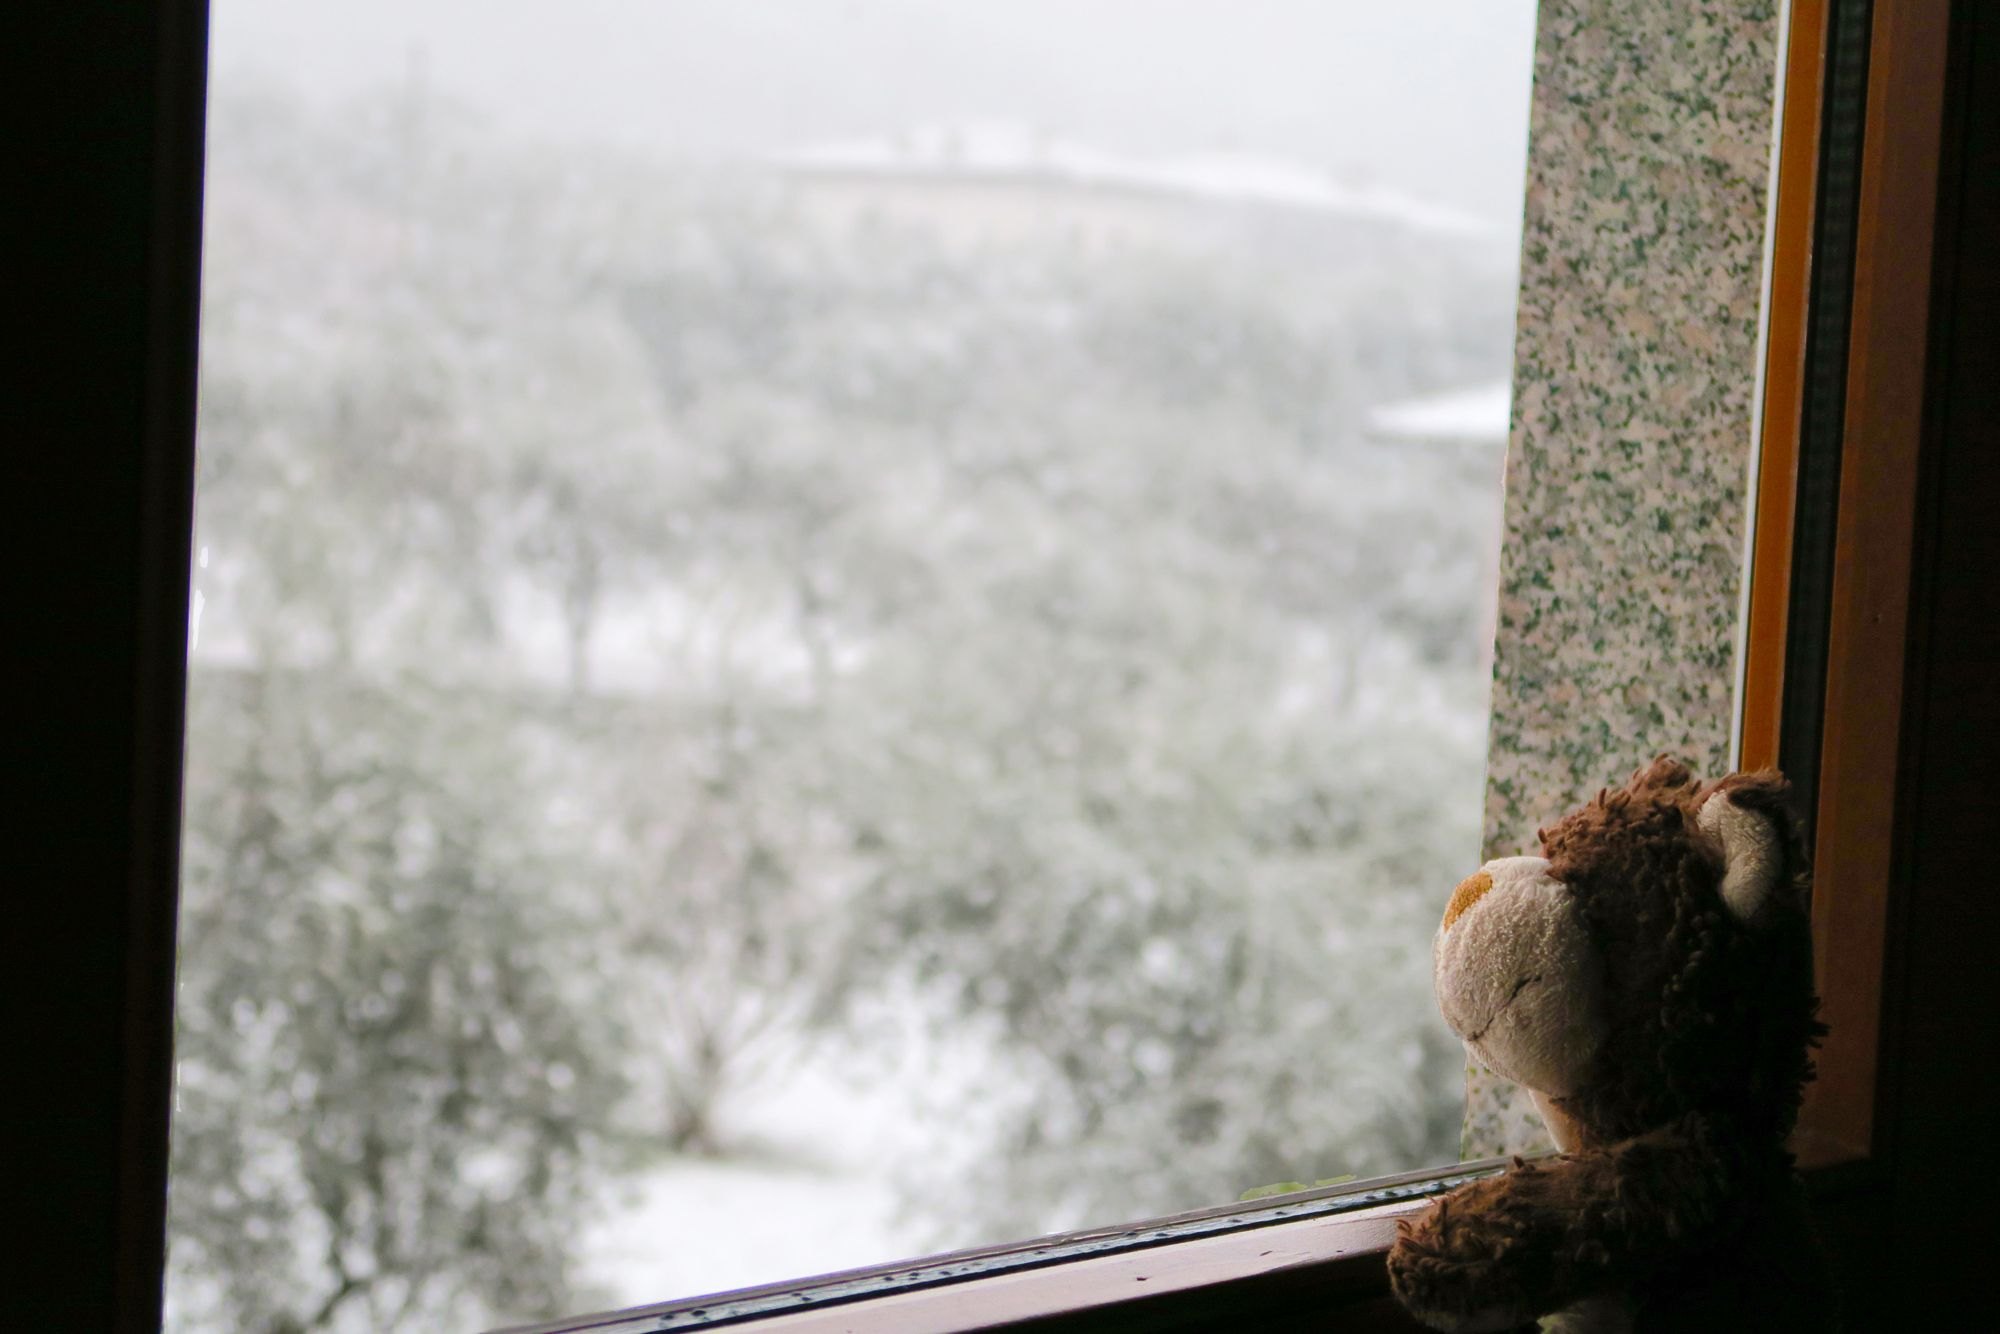 #Arco - Italy - The #bear at the window looking out #snows - orsetto che guarda la neve